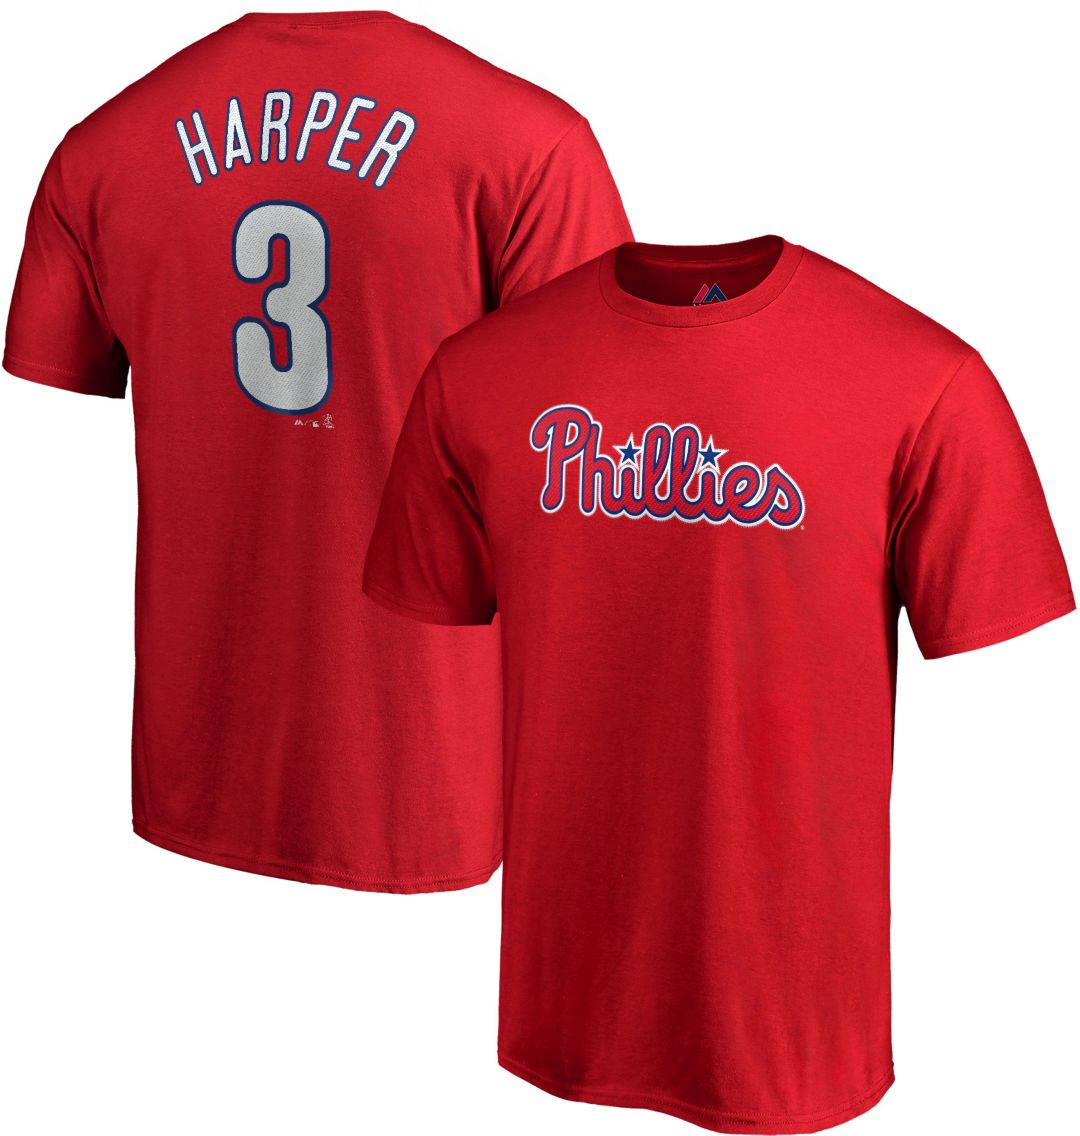 new concept a10fd 53158 Majestic Youth Philadelphia Phillies Bryce Harper #3 Red T-Shirt